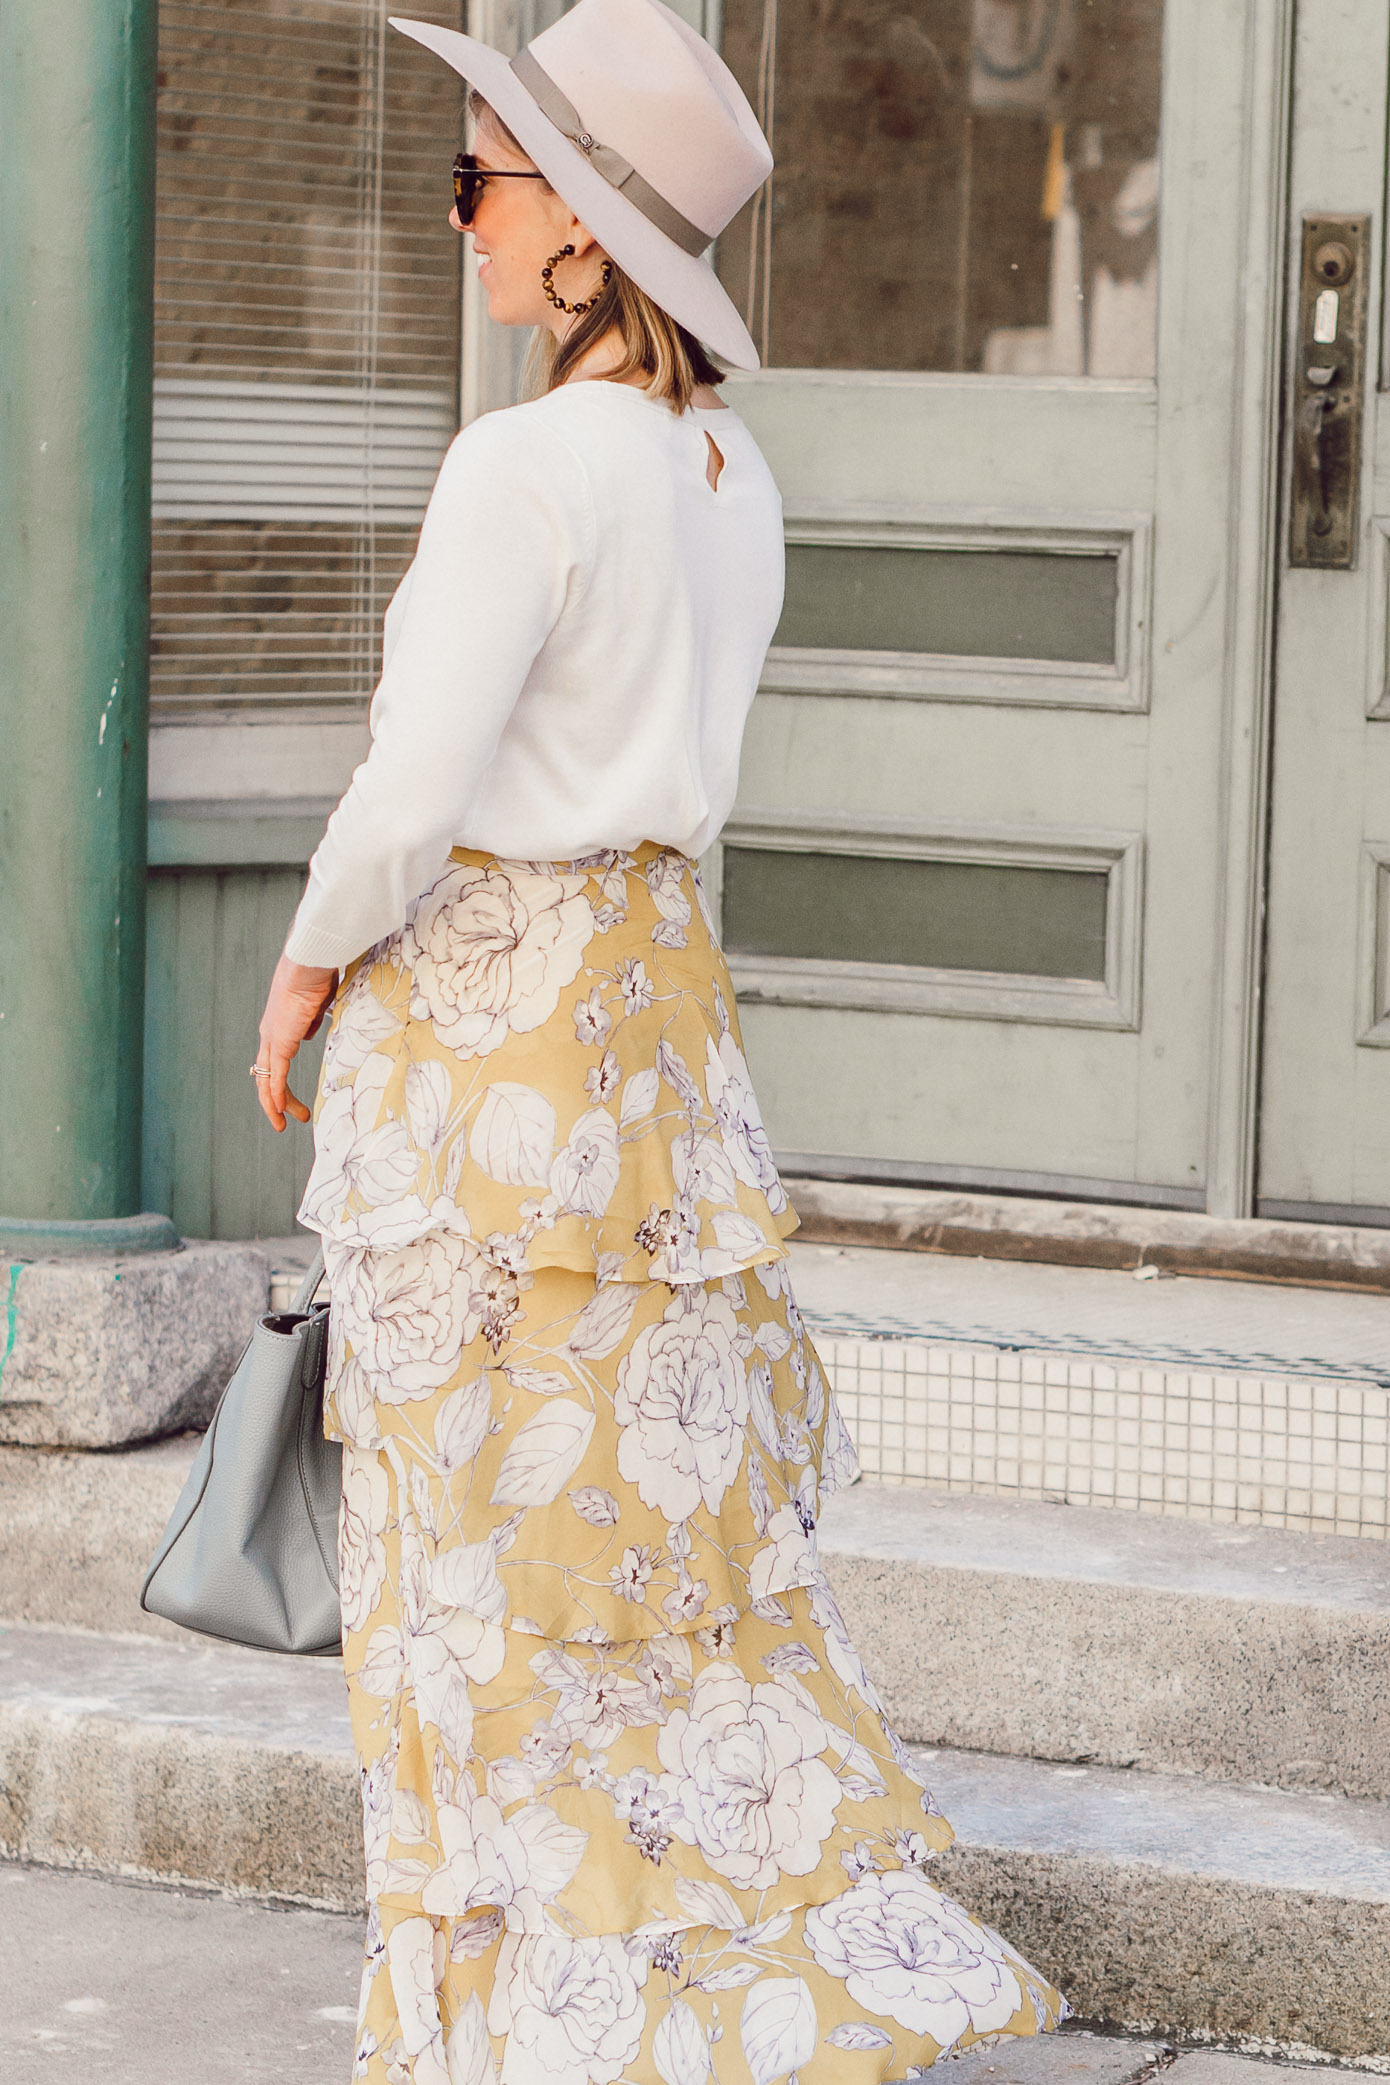 Recent Spring Looks + Spring Dresses & Skirts featured on Louella Reese | Casual Spring Outfit Idea featuring Anthrpologie, J.Crew, Brixton, Beck Bags, and Marc Fisher